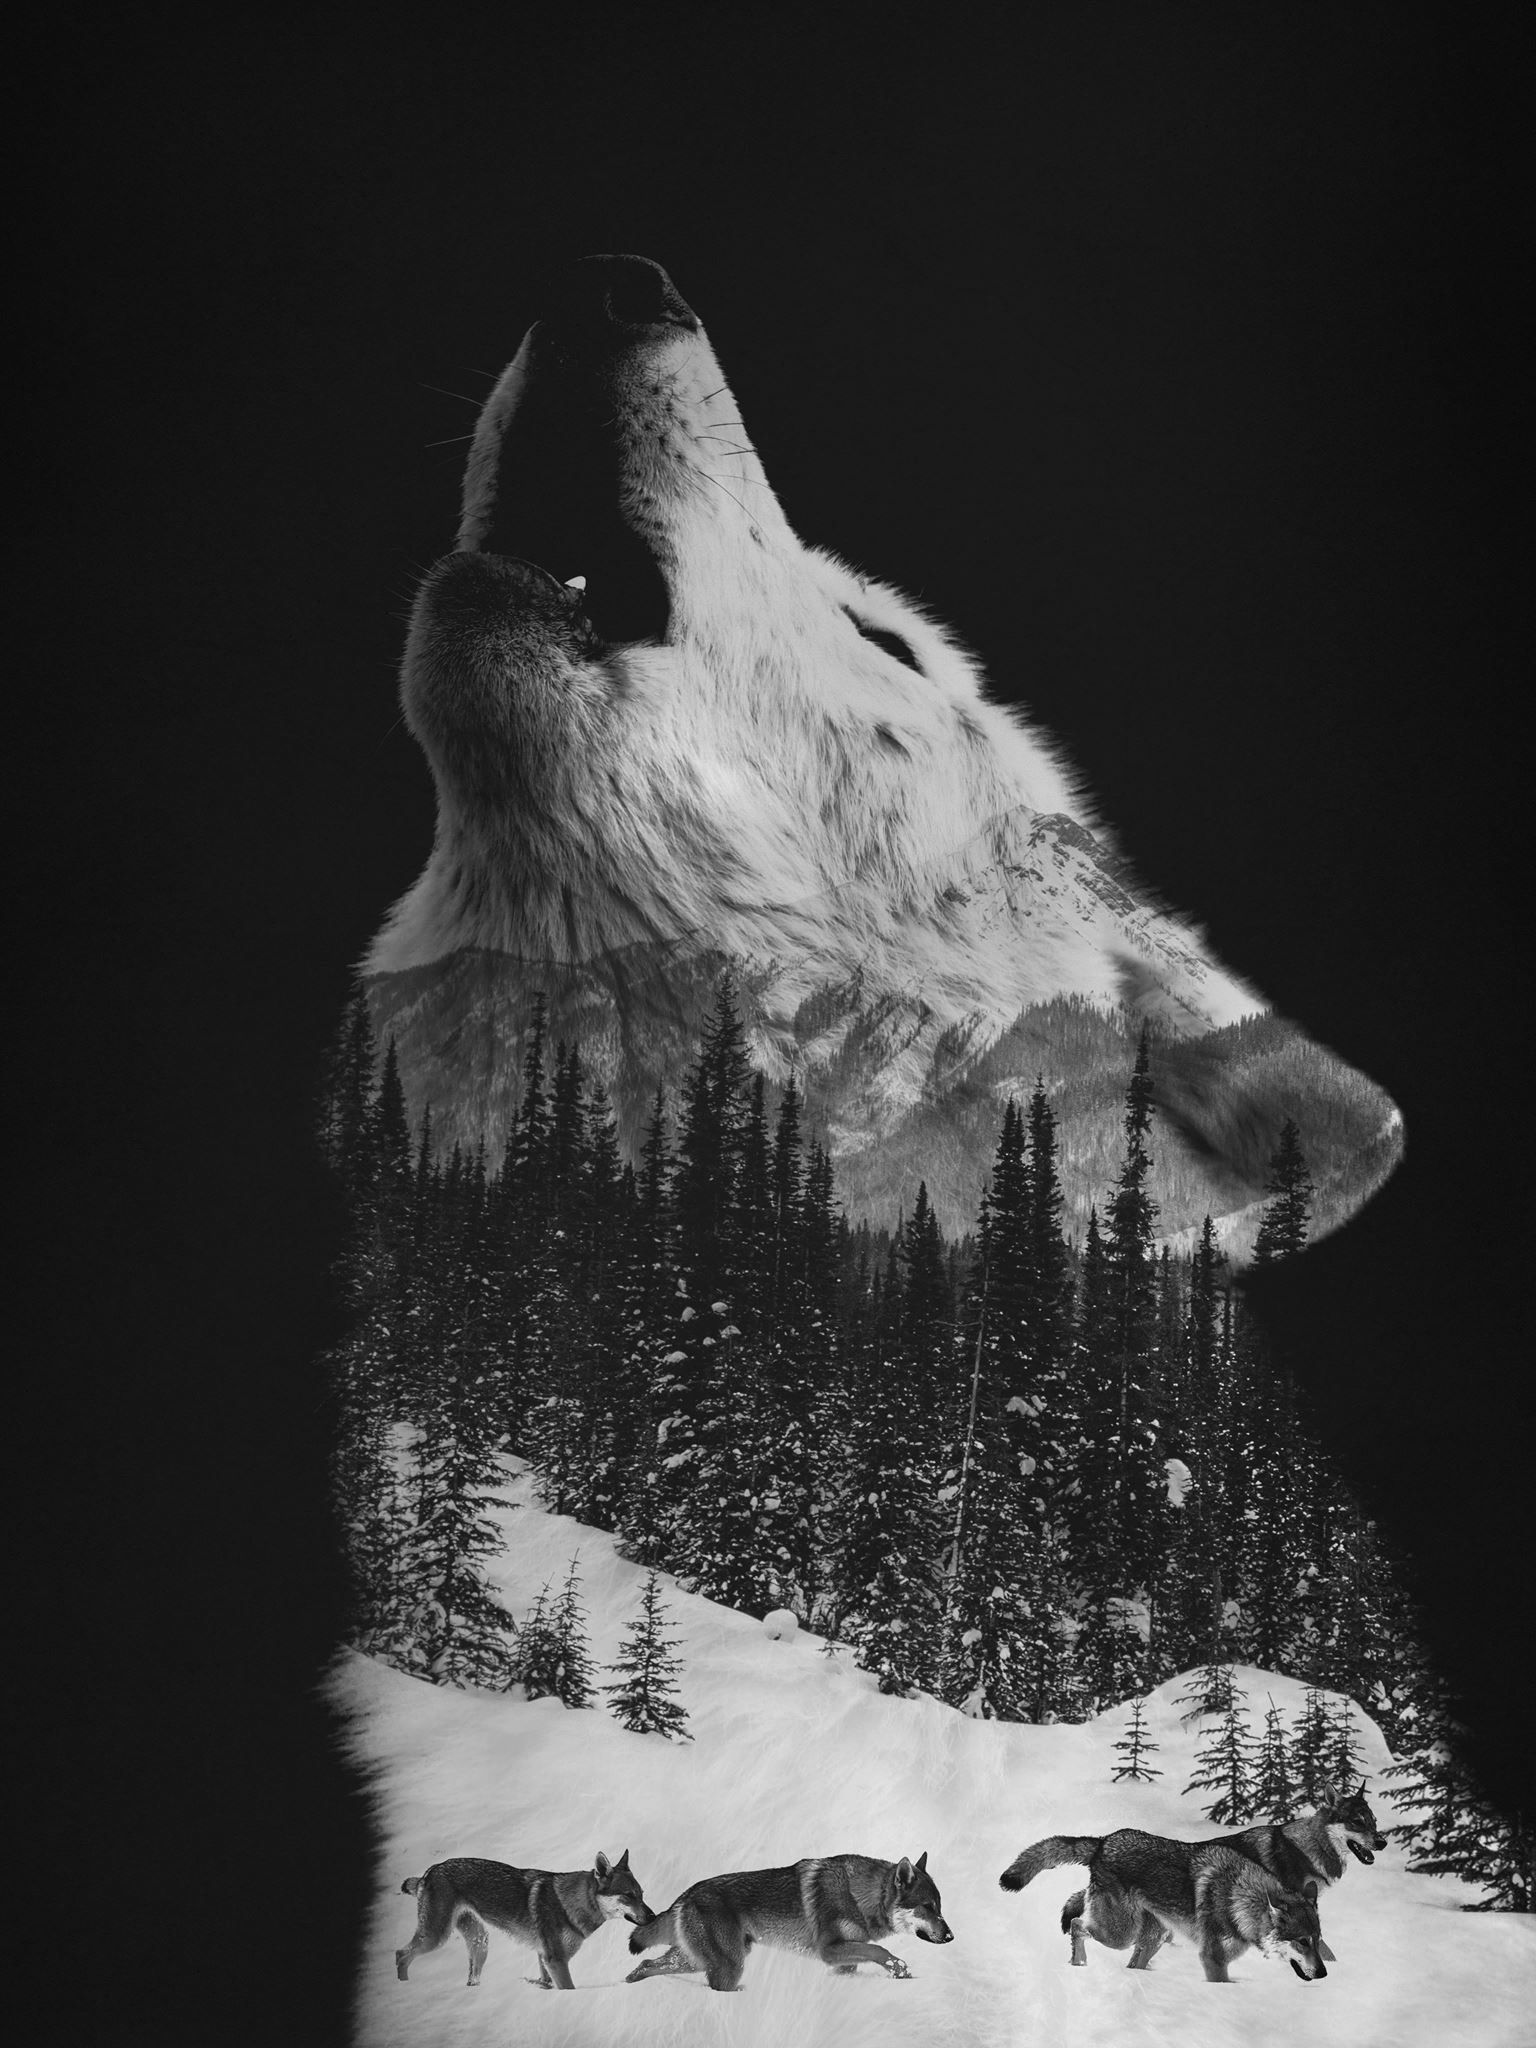 50 Of The Most Beautiful Wolf Tattoo Designs The Internet Has Ever Seen In 2020 Wolf Pack Tattoo Wolf Tattoo Design Wolf Tattoo Sleeve